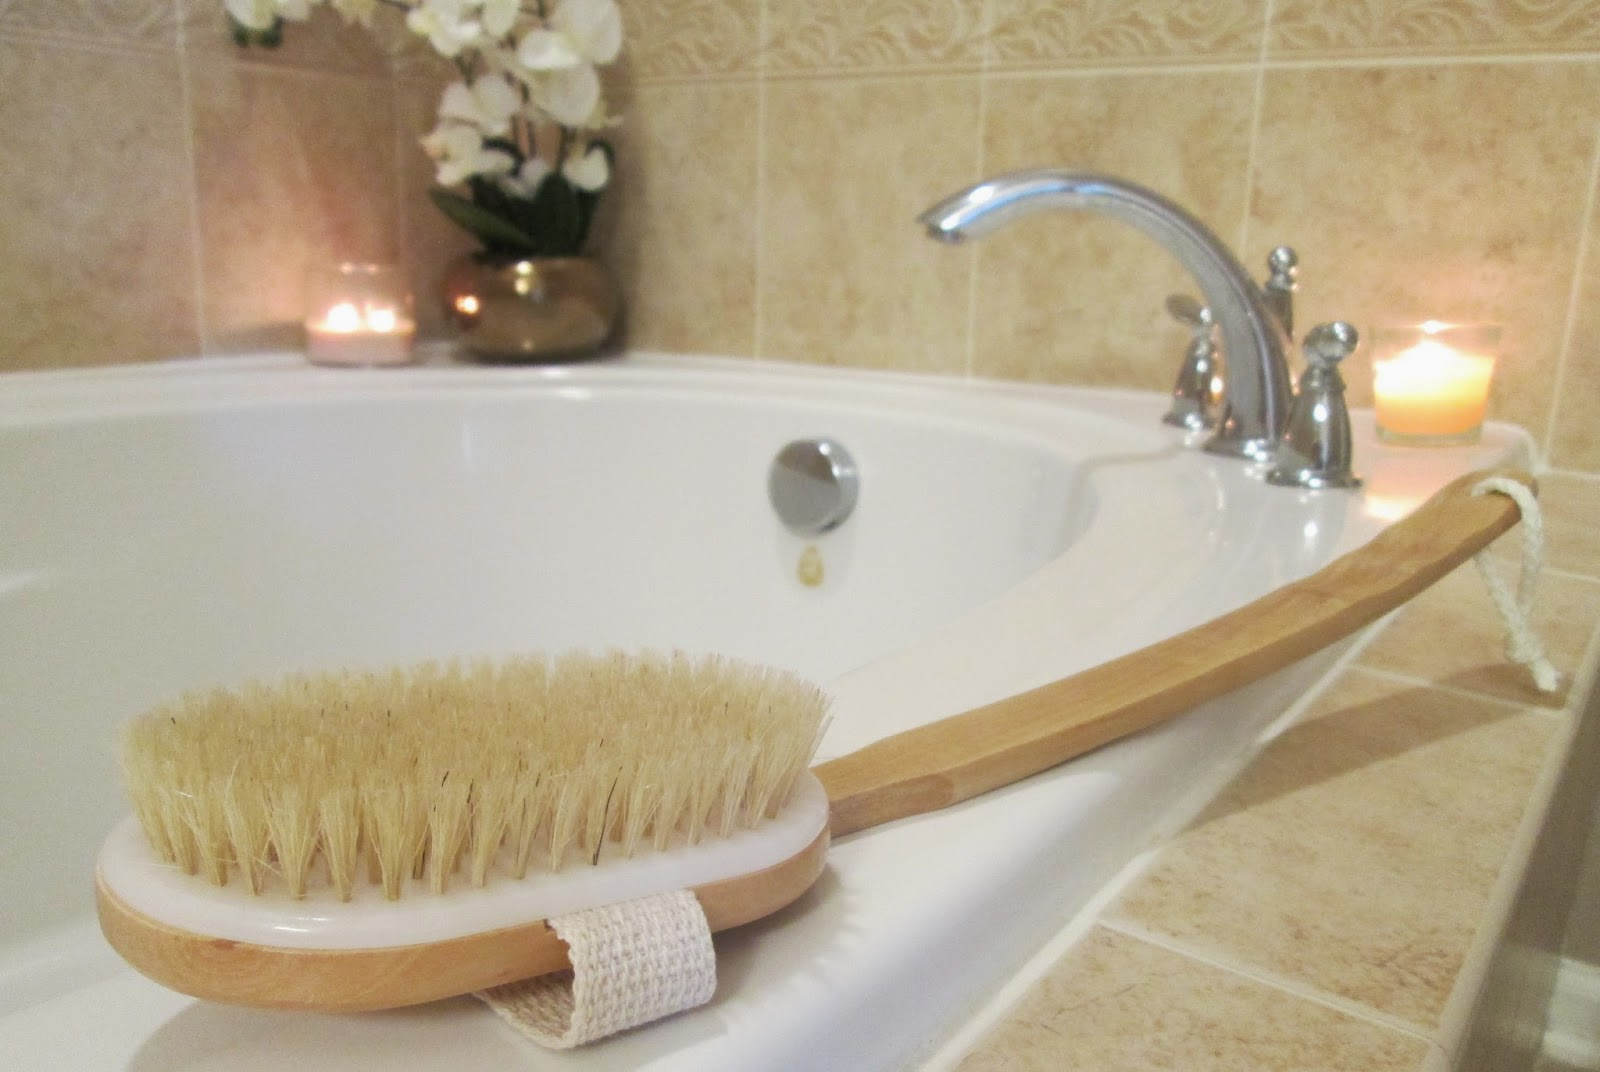 The benefits of using a natural bristle brush and dry brushing